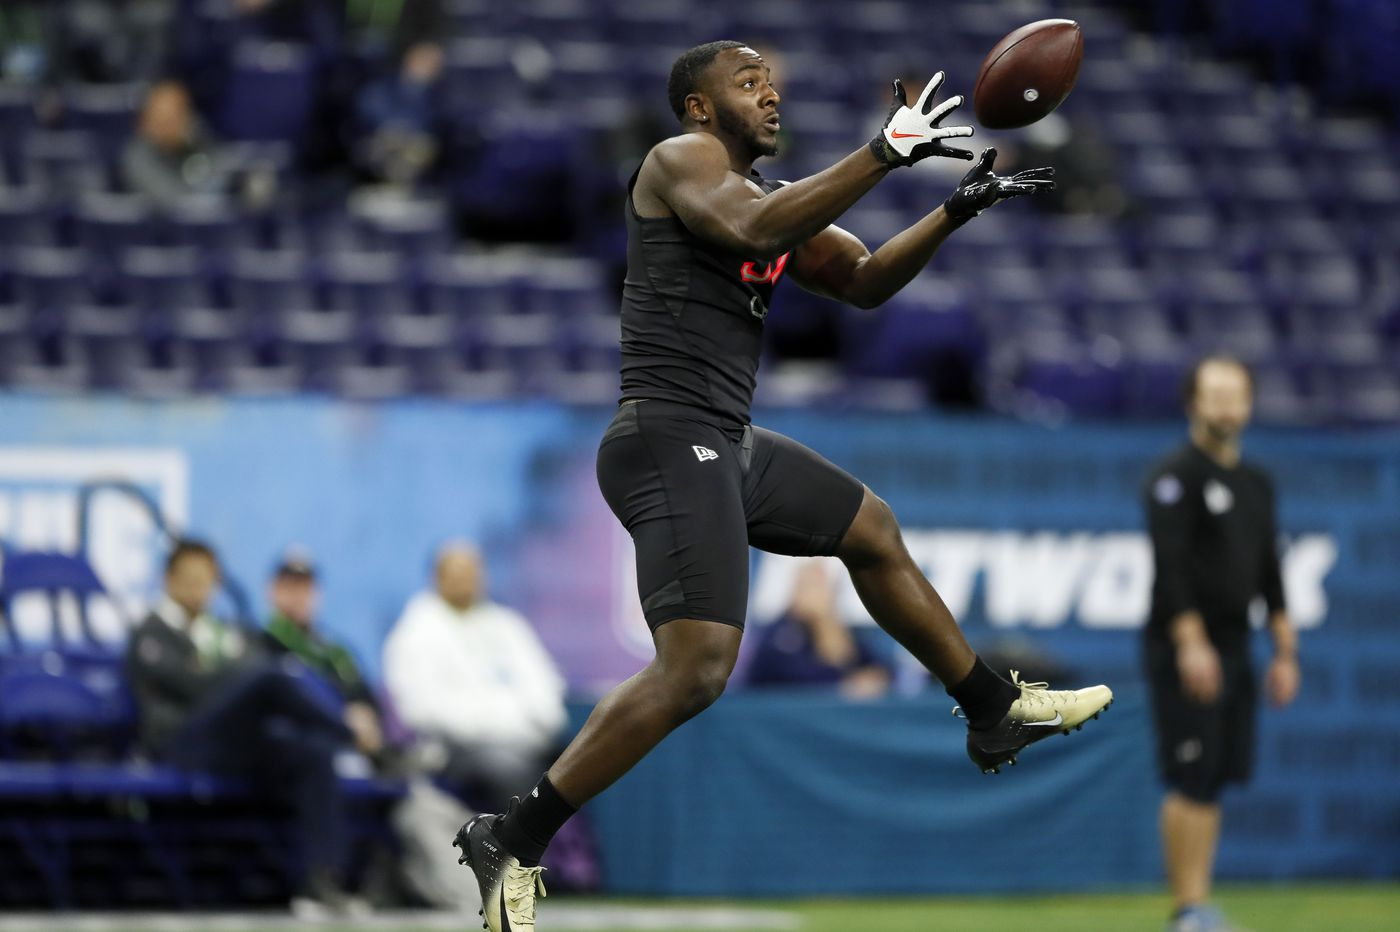 Davion Taylor is an athletic Eagles rookie LB who needs work in the defense, but it's a tough year for that